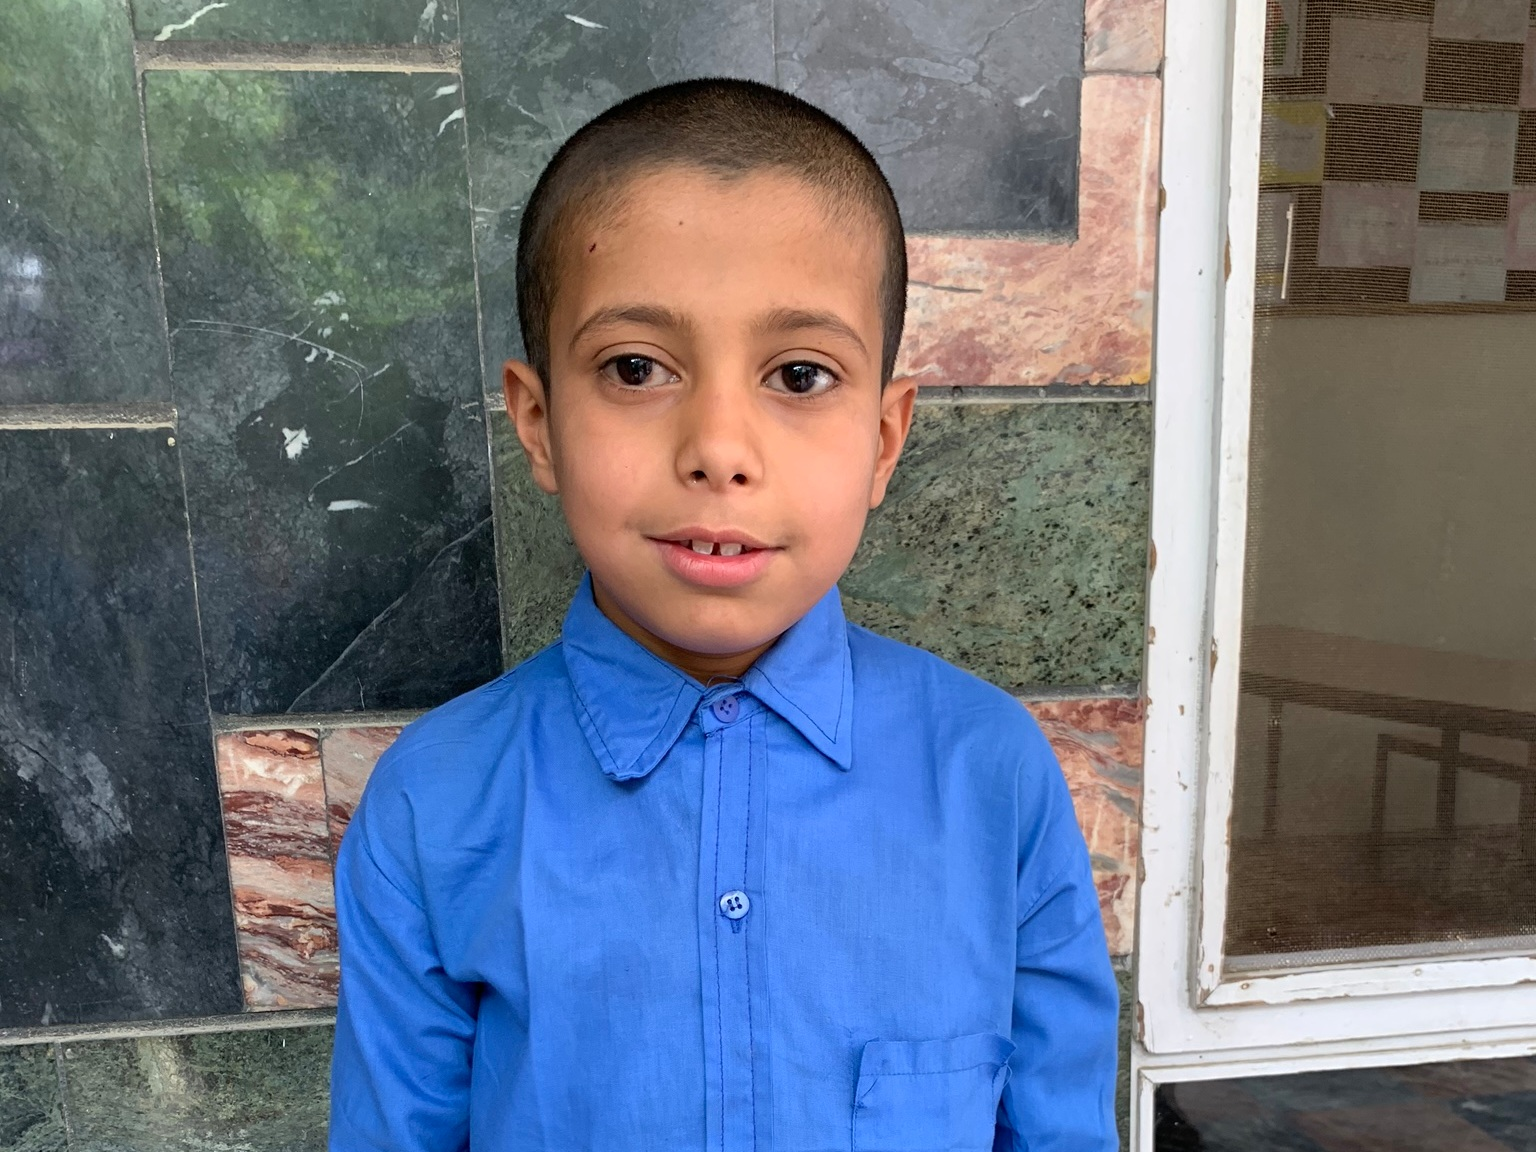 Mushta Hossein, Age 9 - Mushta Hossein has 5 siblings. His mother is a cleaner and his father is without work at this time.BE MUSHTA HOSSEIN'S PARTNER>